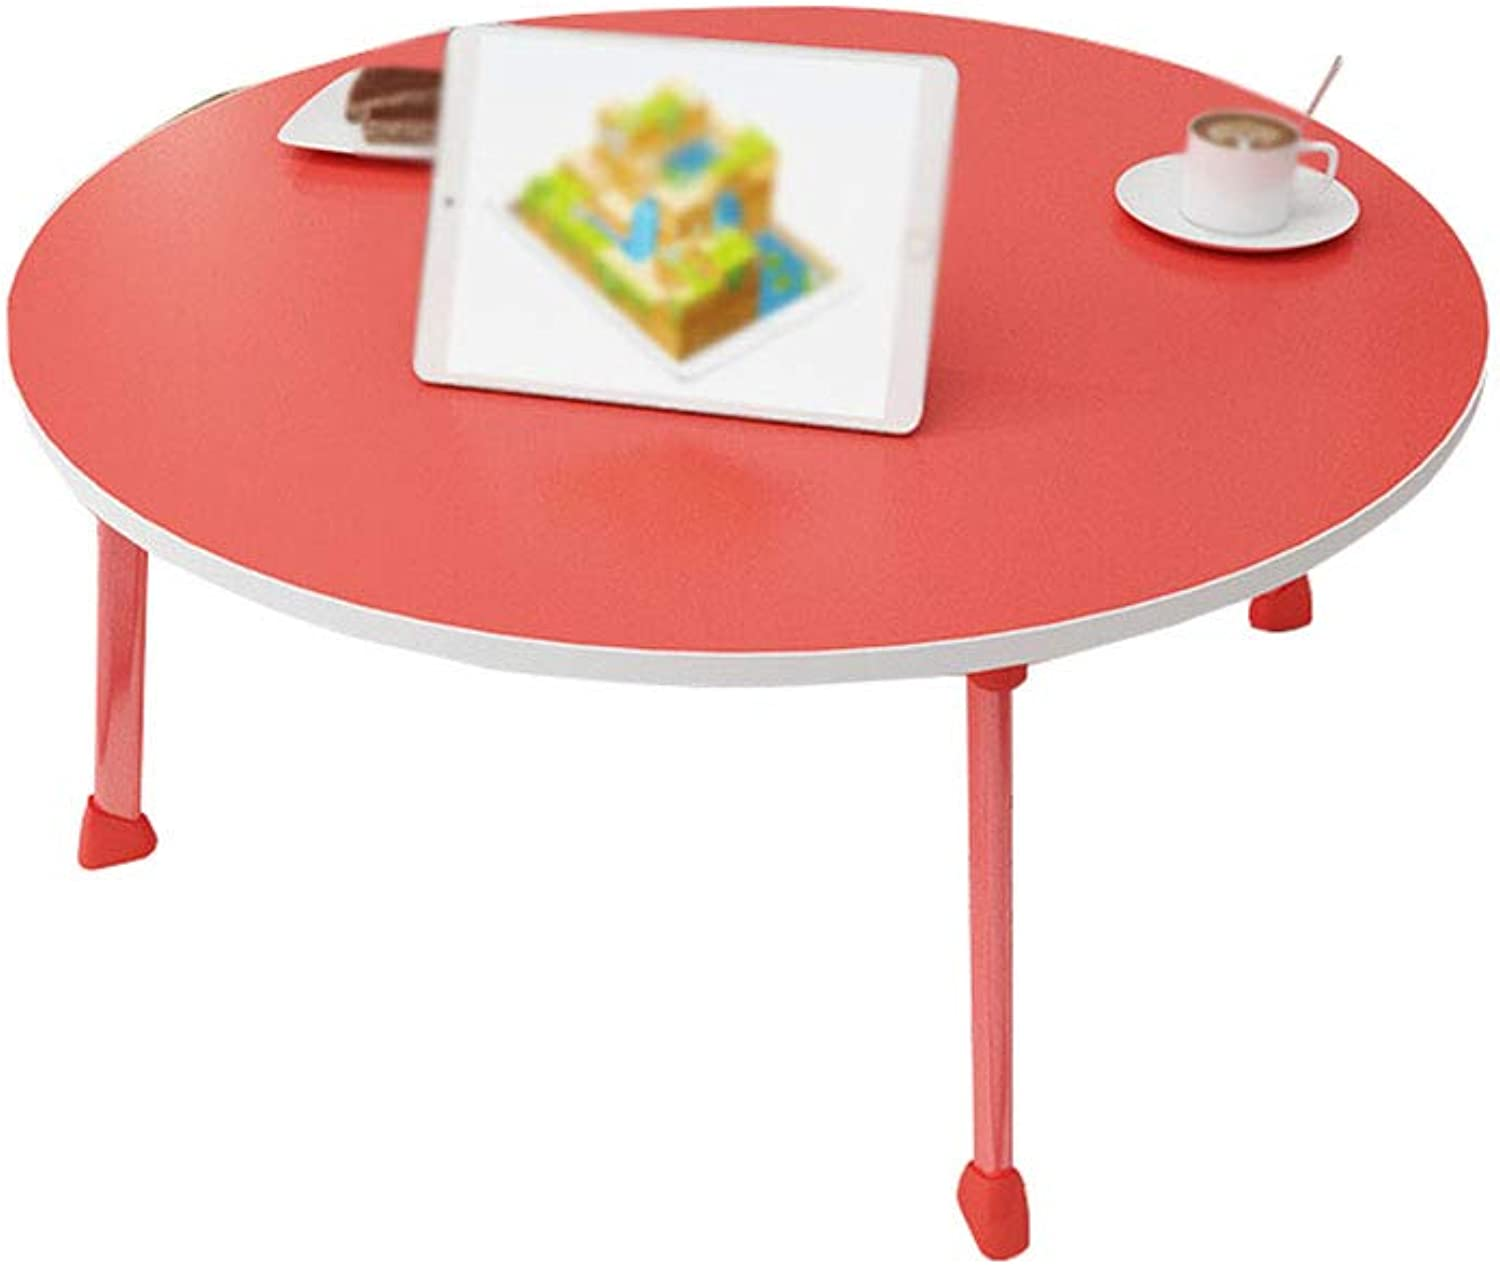 CHANG-dq Round Small Table, Laptop Table Student Foldable Household Table  60  60  28cm Household table (color   Red, Size   60  60  28cm)